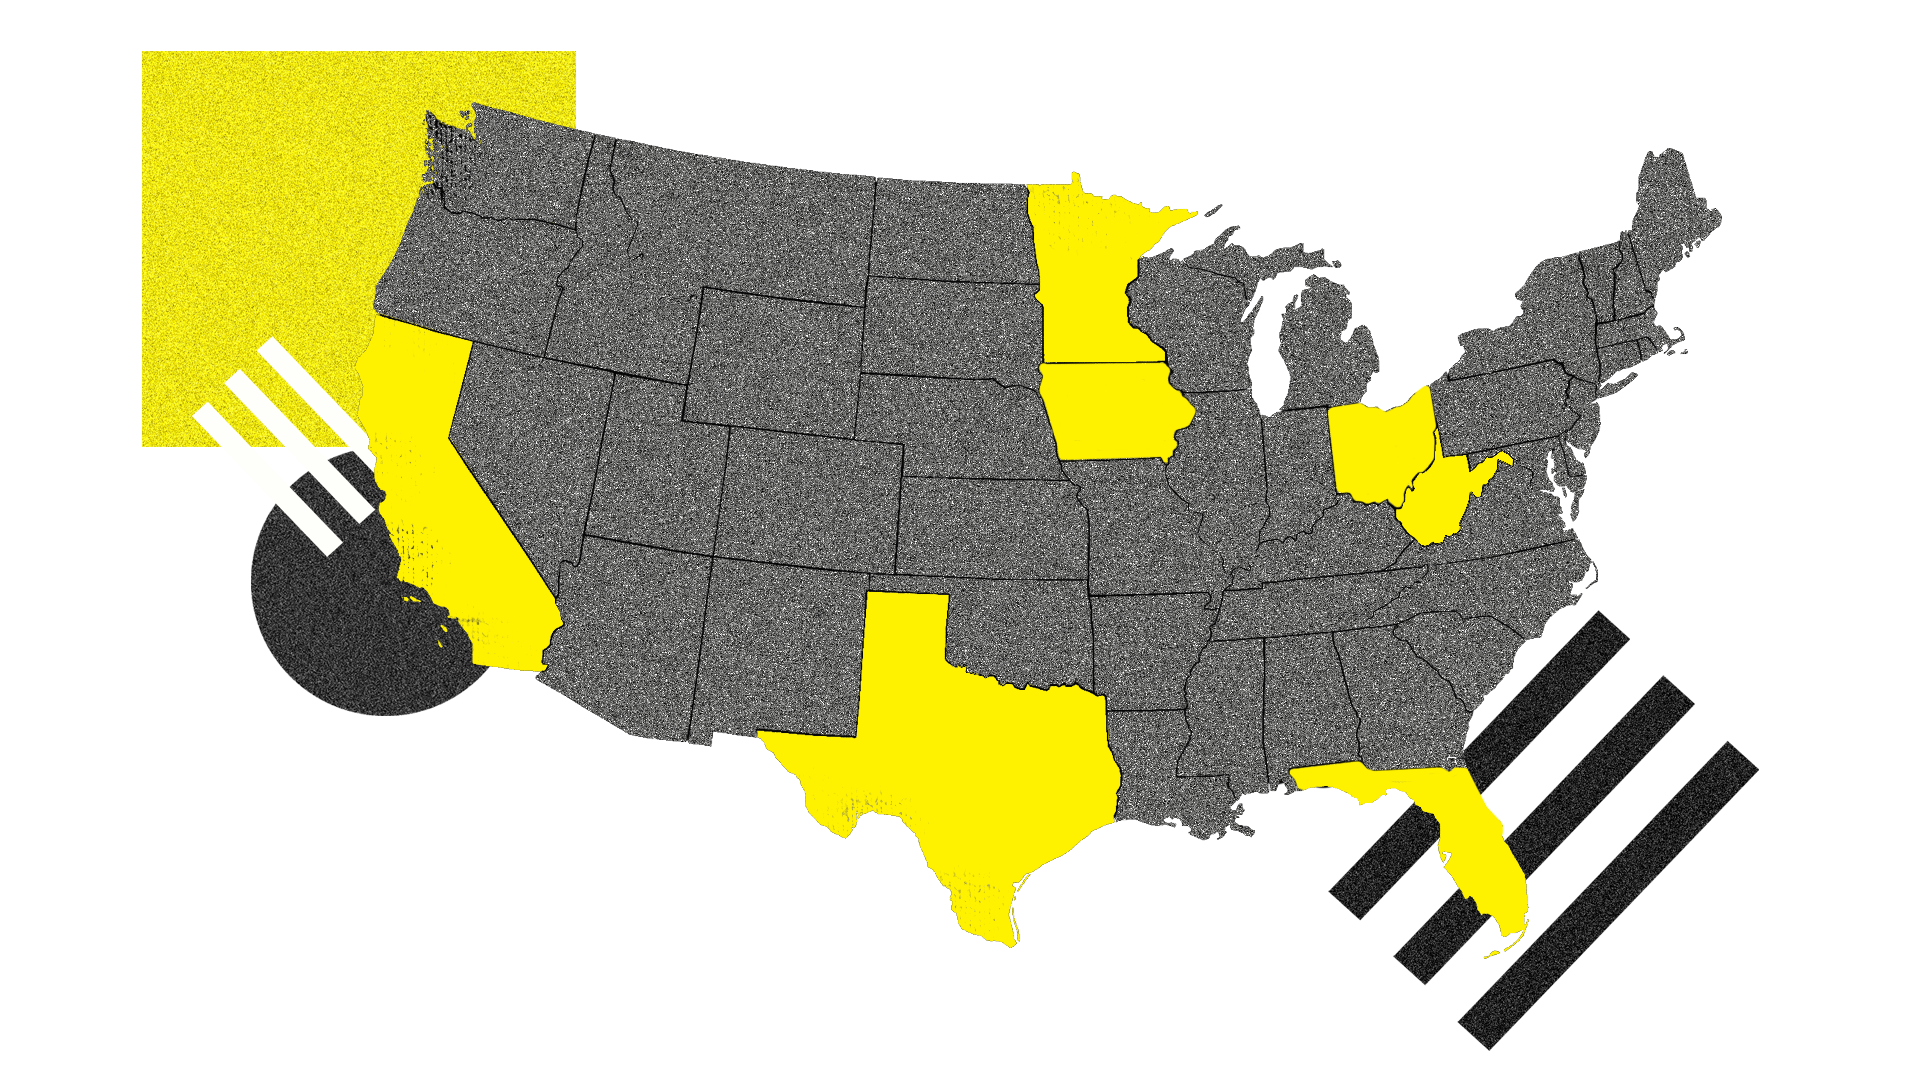 Illustration of United States map with the Axios 8 states highlighted